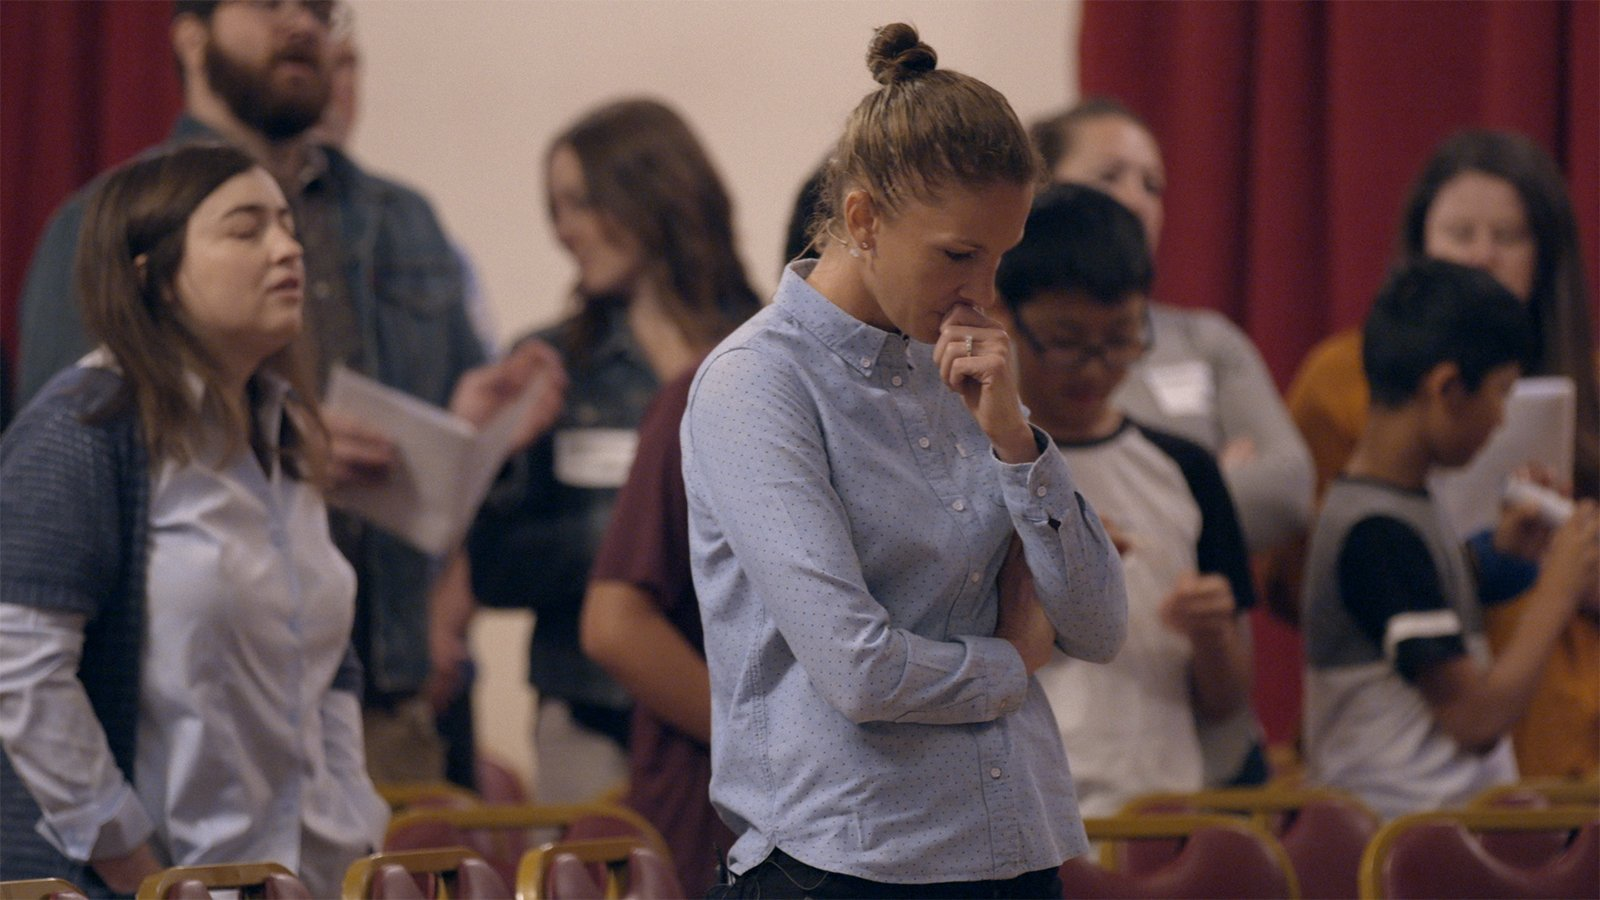 """Conversion therapy survivor Julie Rodgers at church in """"Pray Away,"""" directed by Kristine Stolakis. Image courtesy of Multitude Films"""